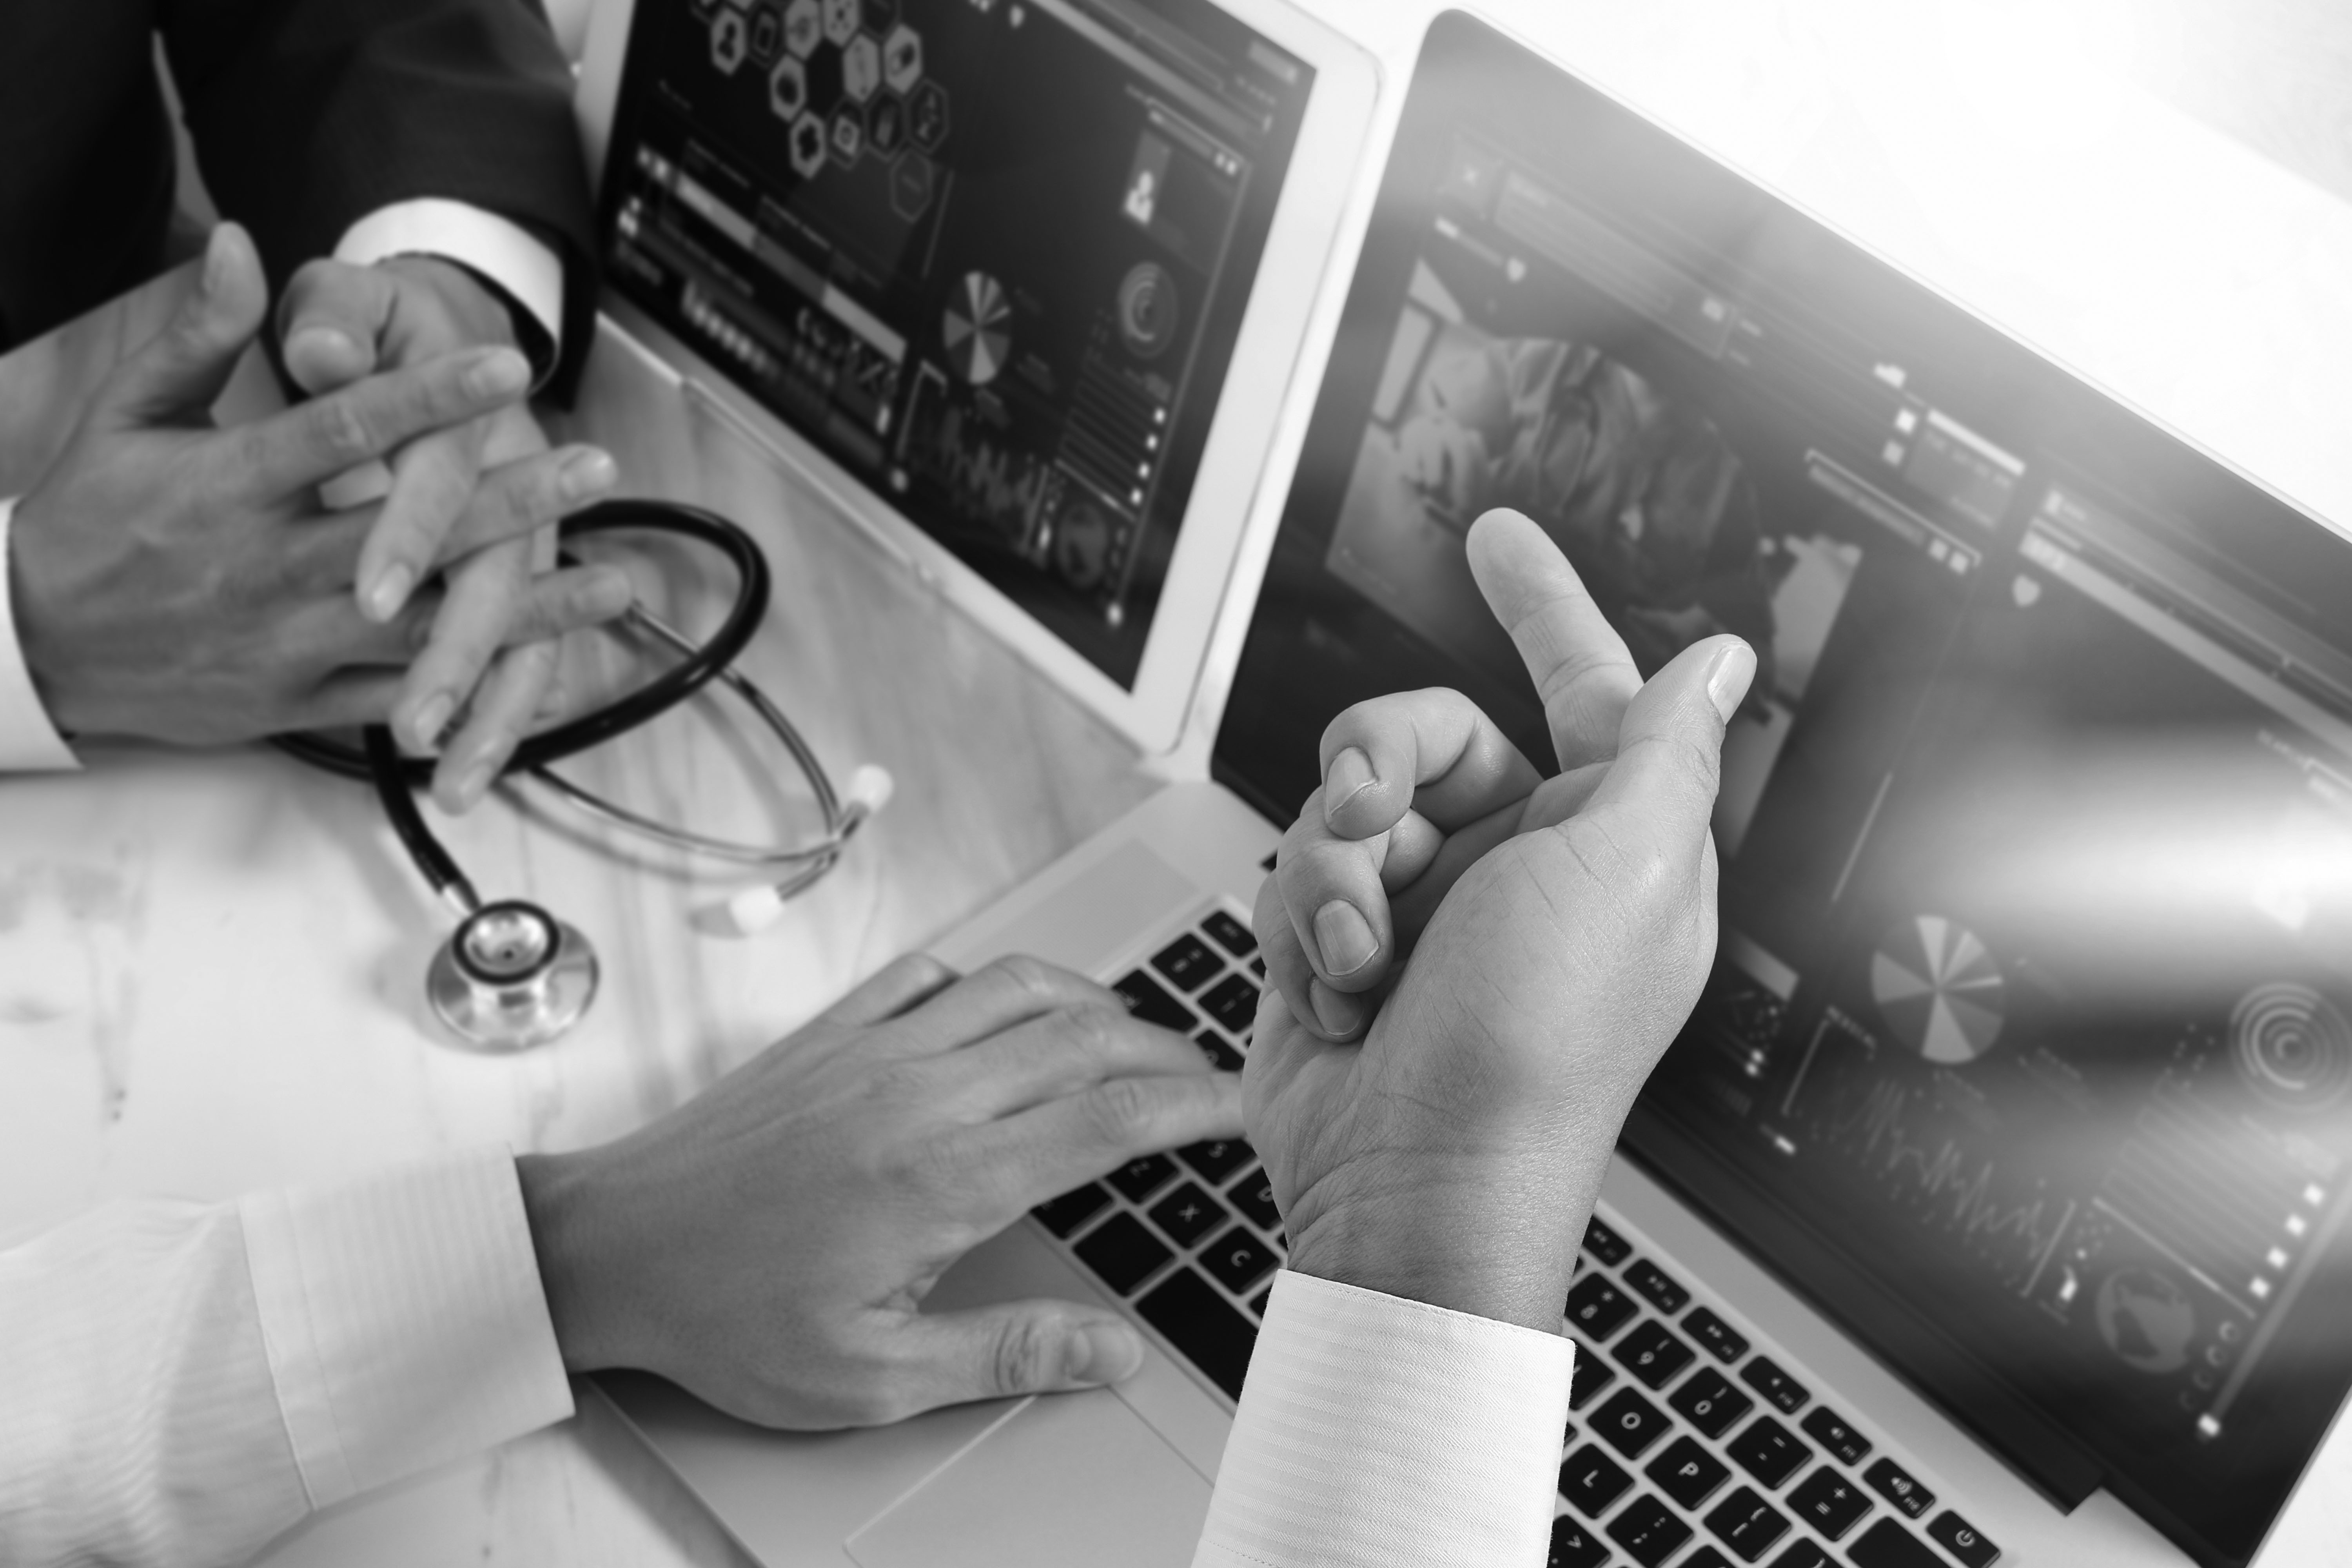 Virtual Clinical Trials in COVID-19 and Beyond